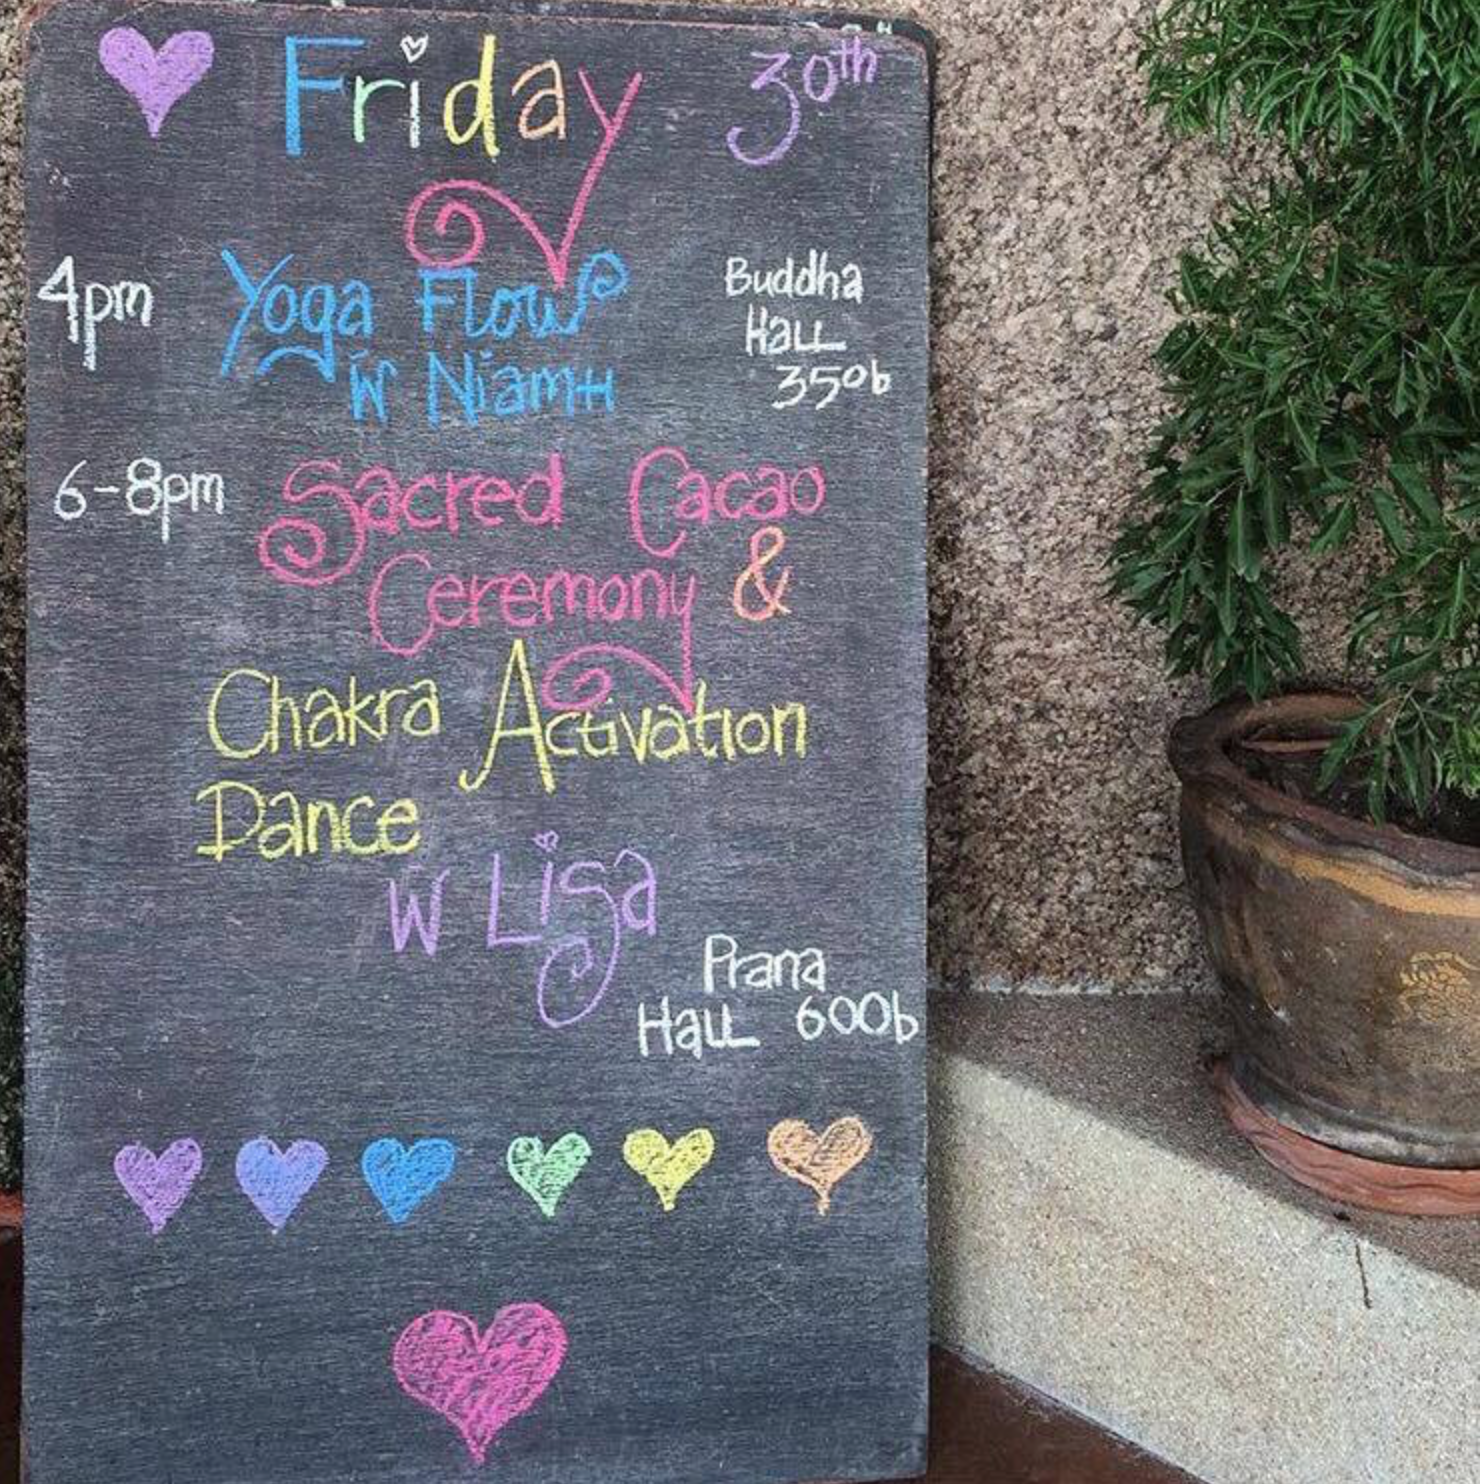 Sanctuary Thailand Yoga Schedule